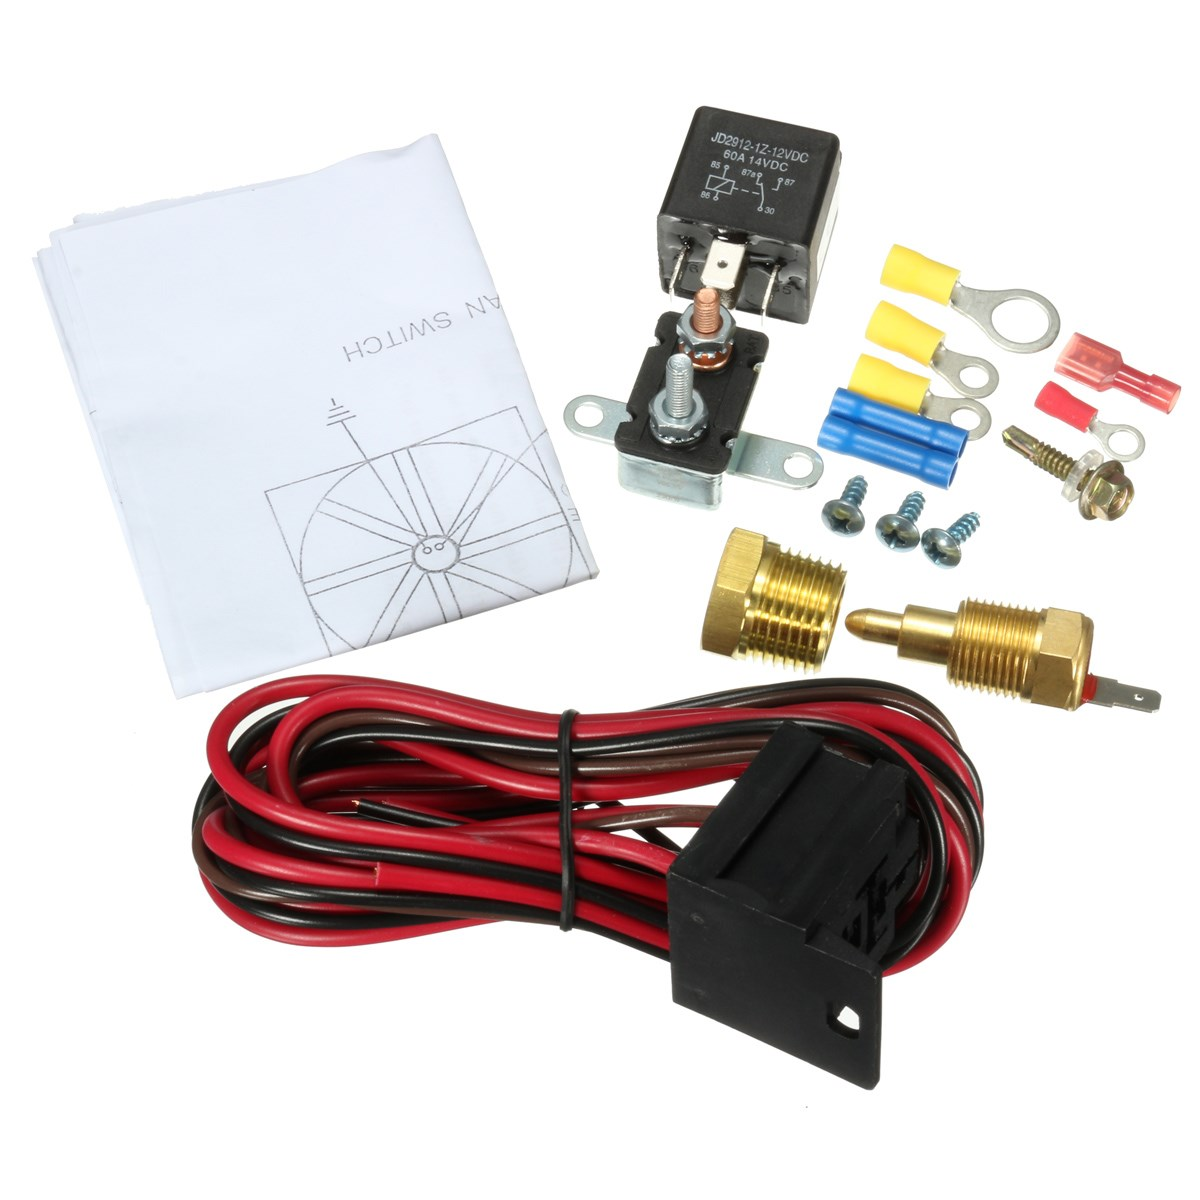 US $11 81 23% OFF|New 210 To 195 Degree Engine Cooling Fan Thermostat  Temperature Switch Sensor Relay Kit 5 Pins 12V DC-in Temperature Sensor  from